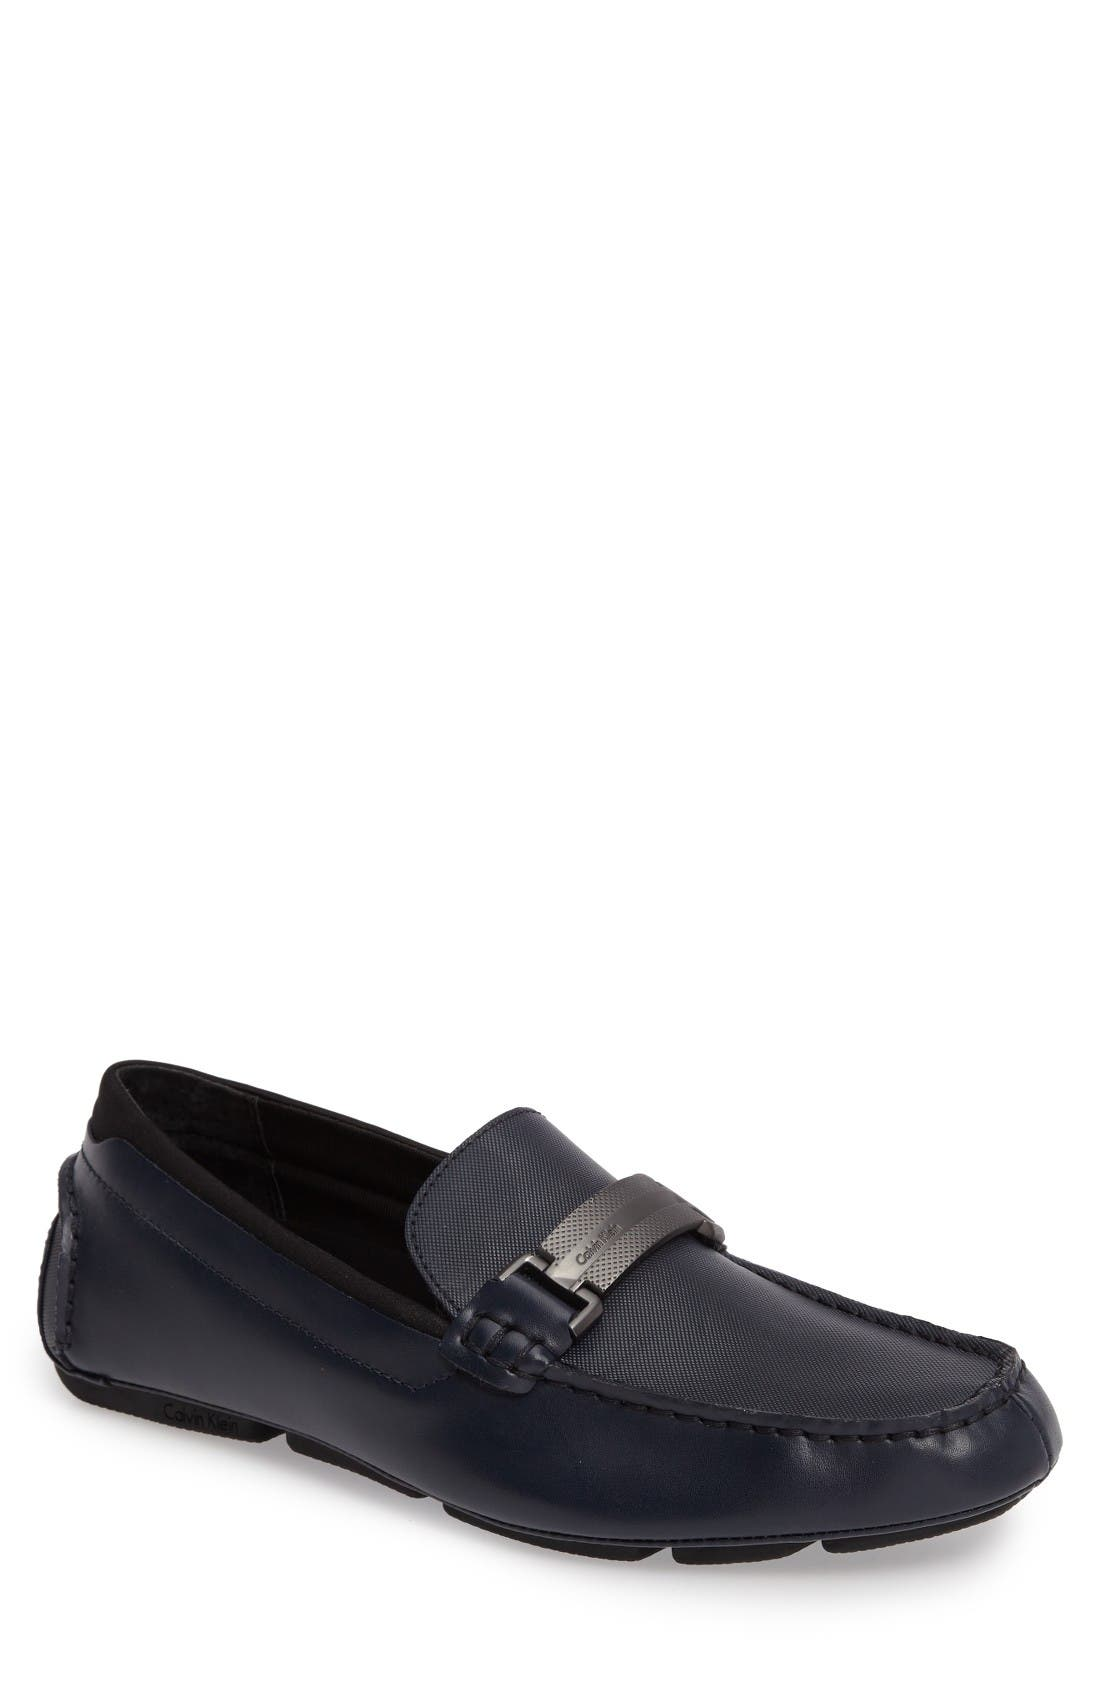 CALVIN KLEIN Maxim Driving Loafer